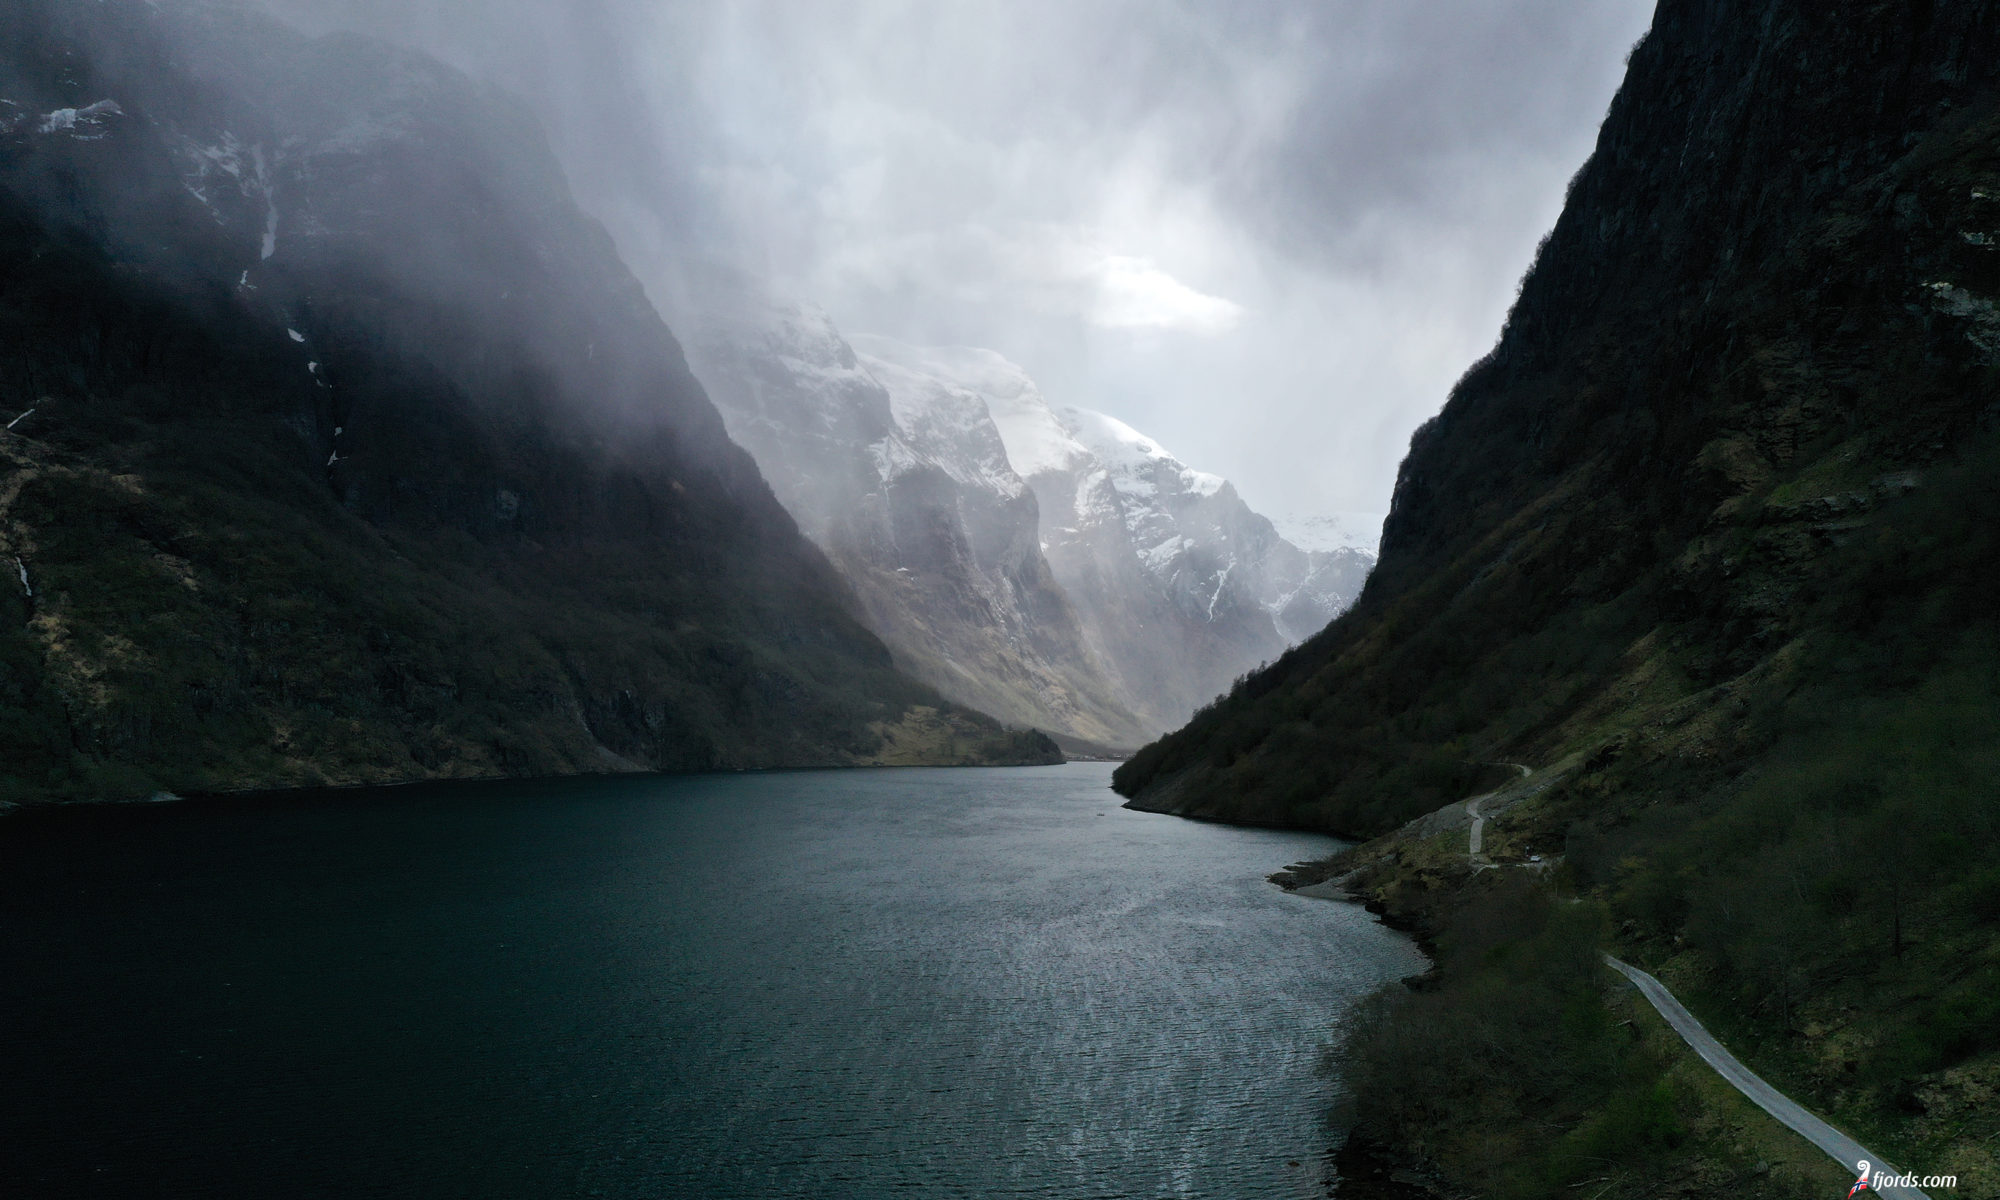 FJORDS NORWAY - Download Free Wallpaper from the Fjords